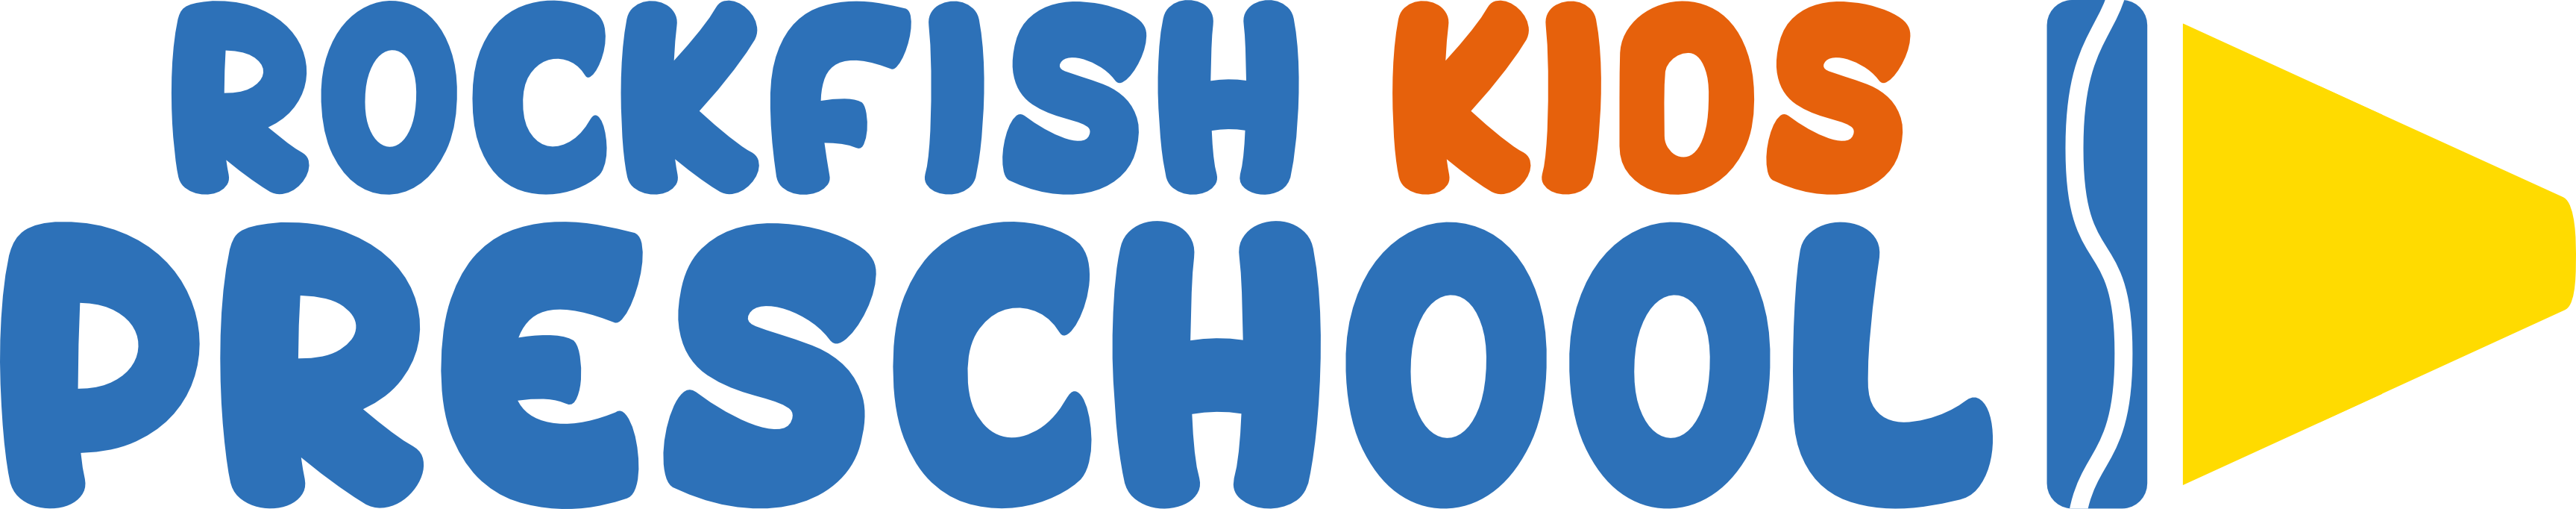 RockFish Kids Preschool